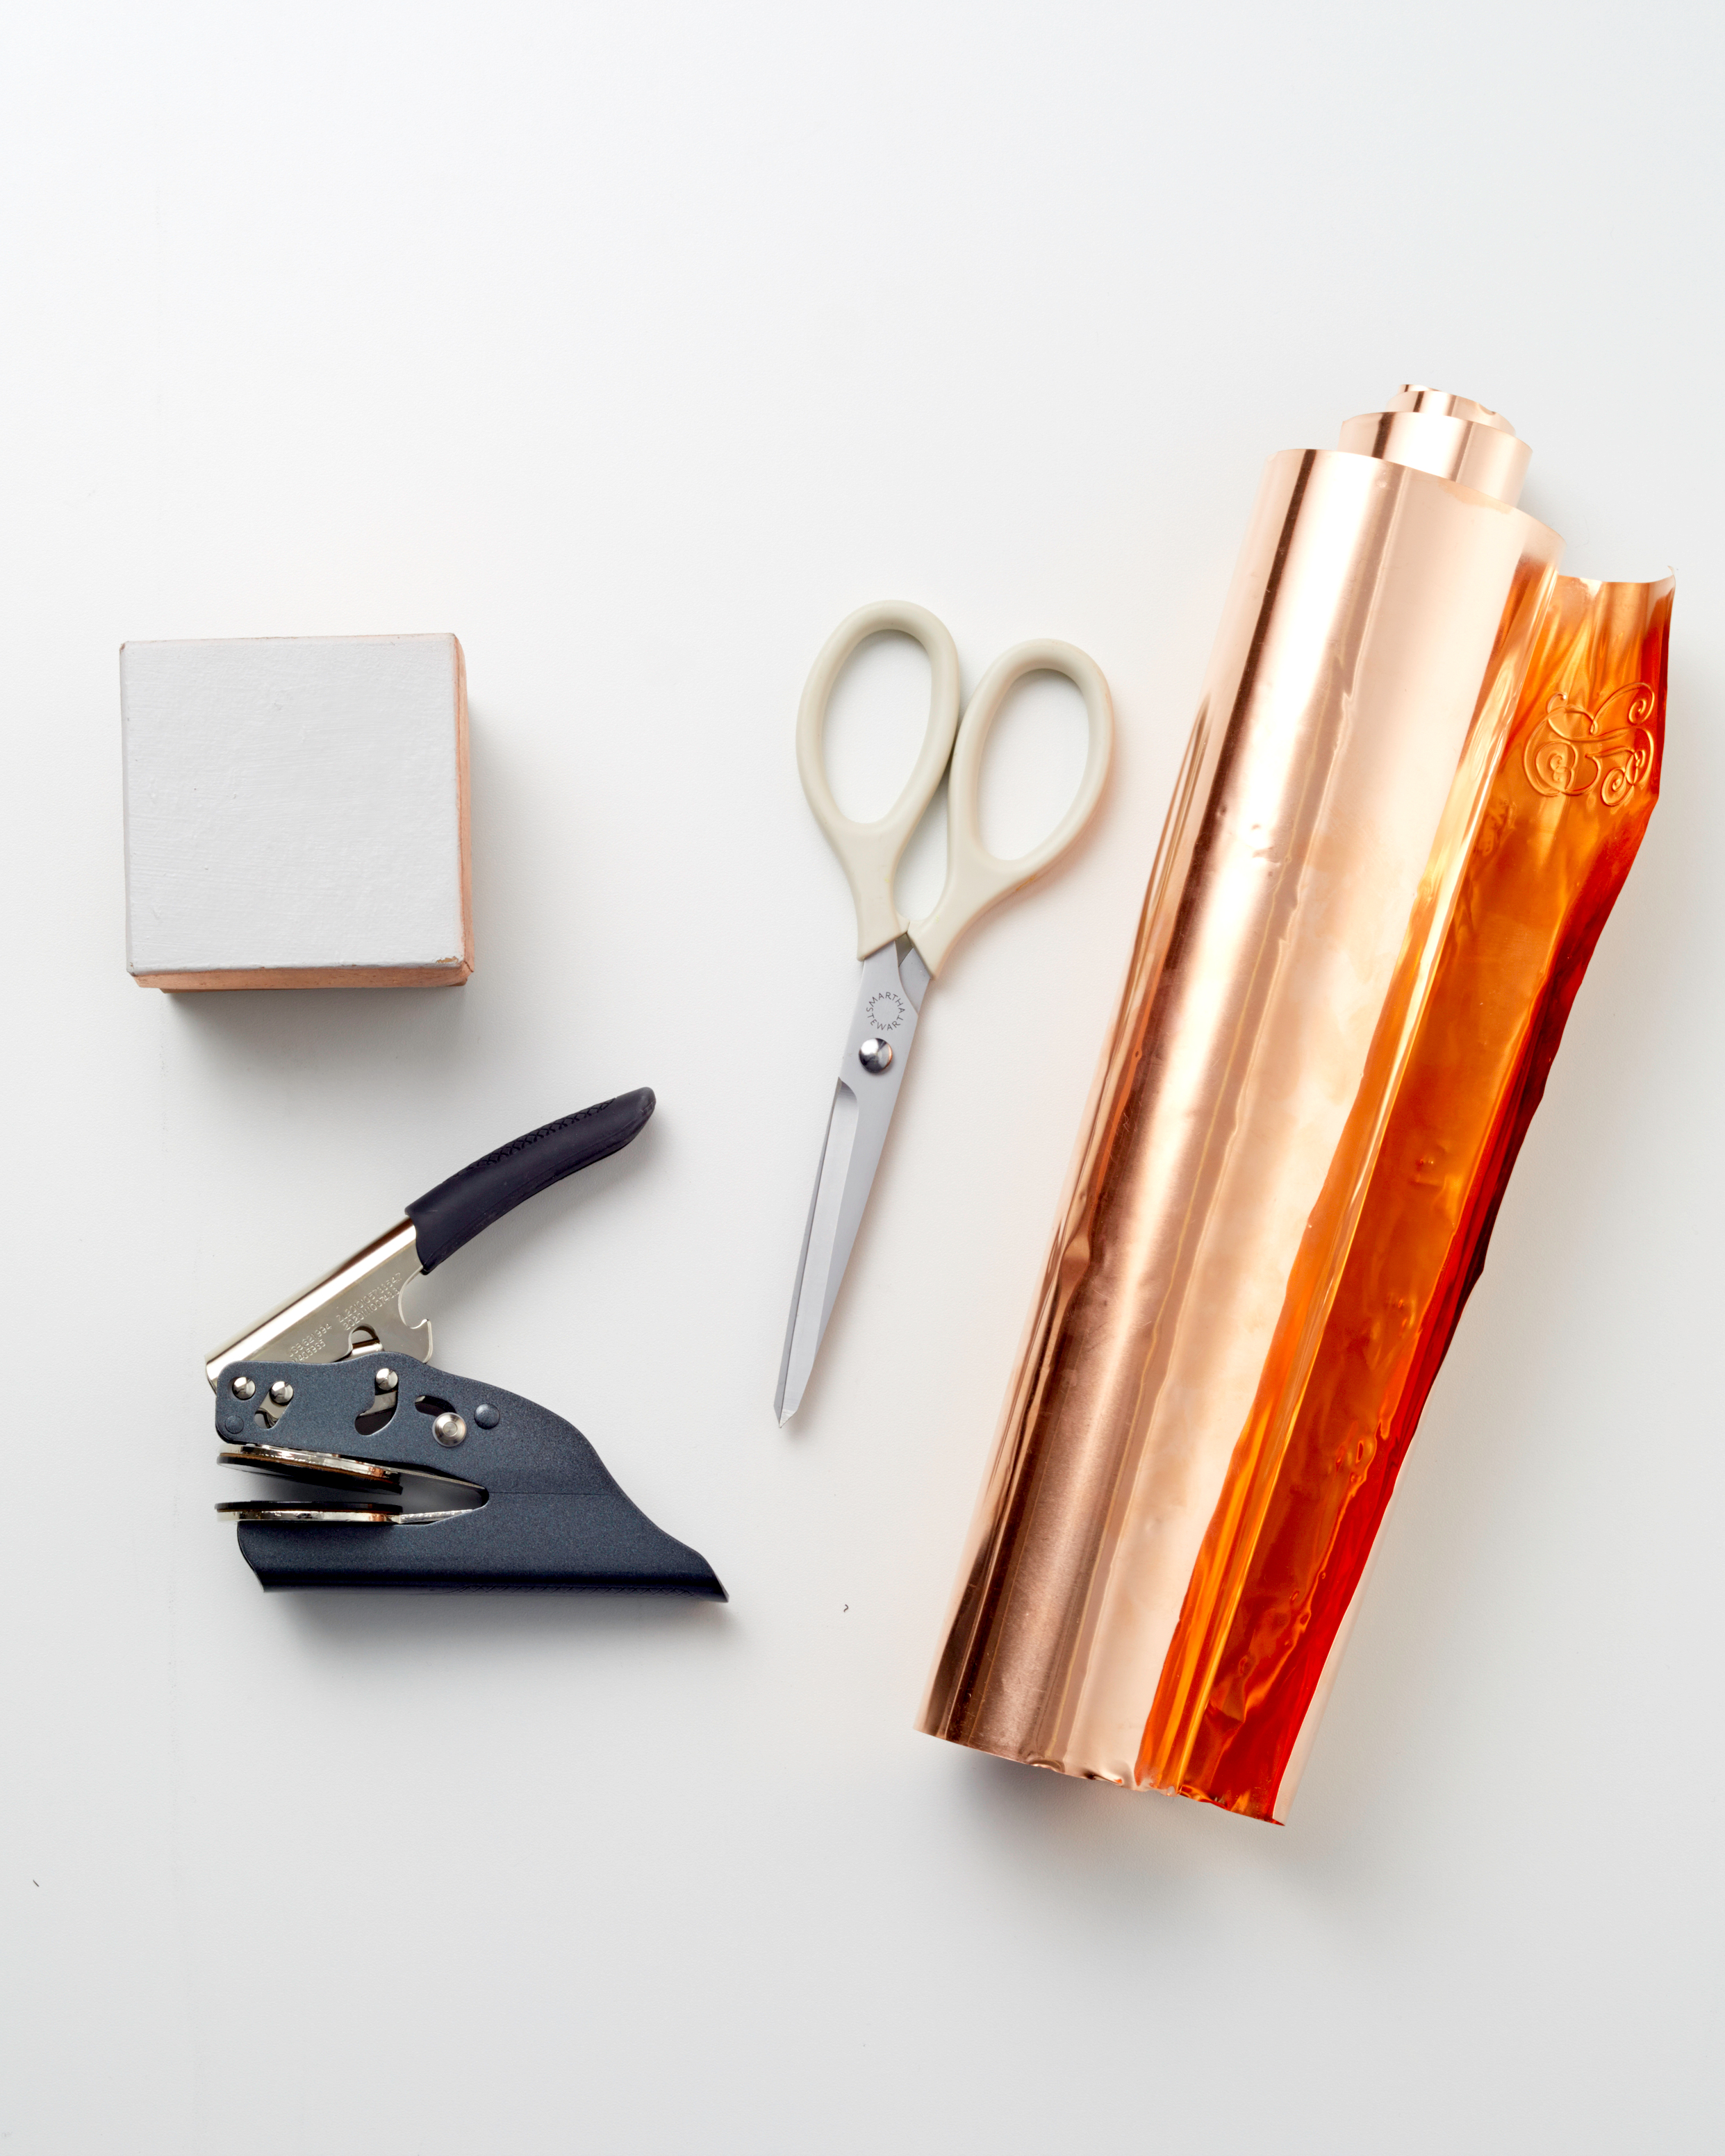 embossed-copper-box-how-to-204-d112138-supplies-0515.jpg